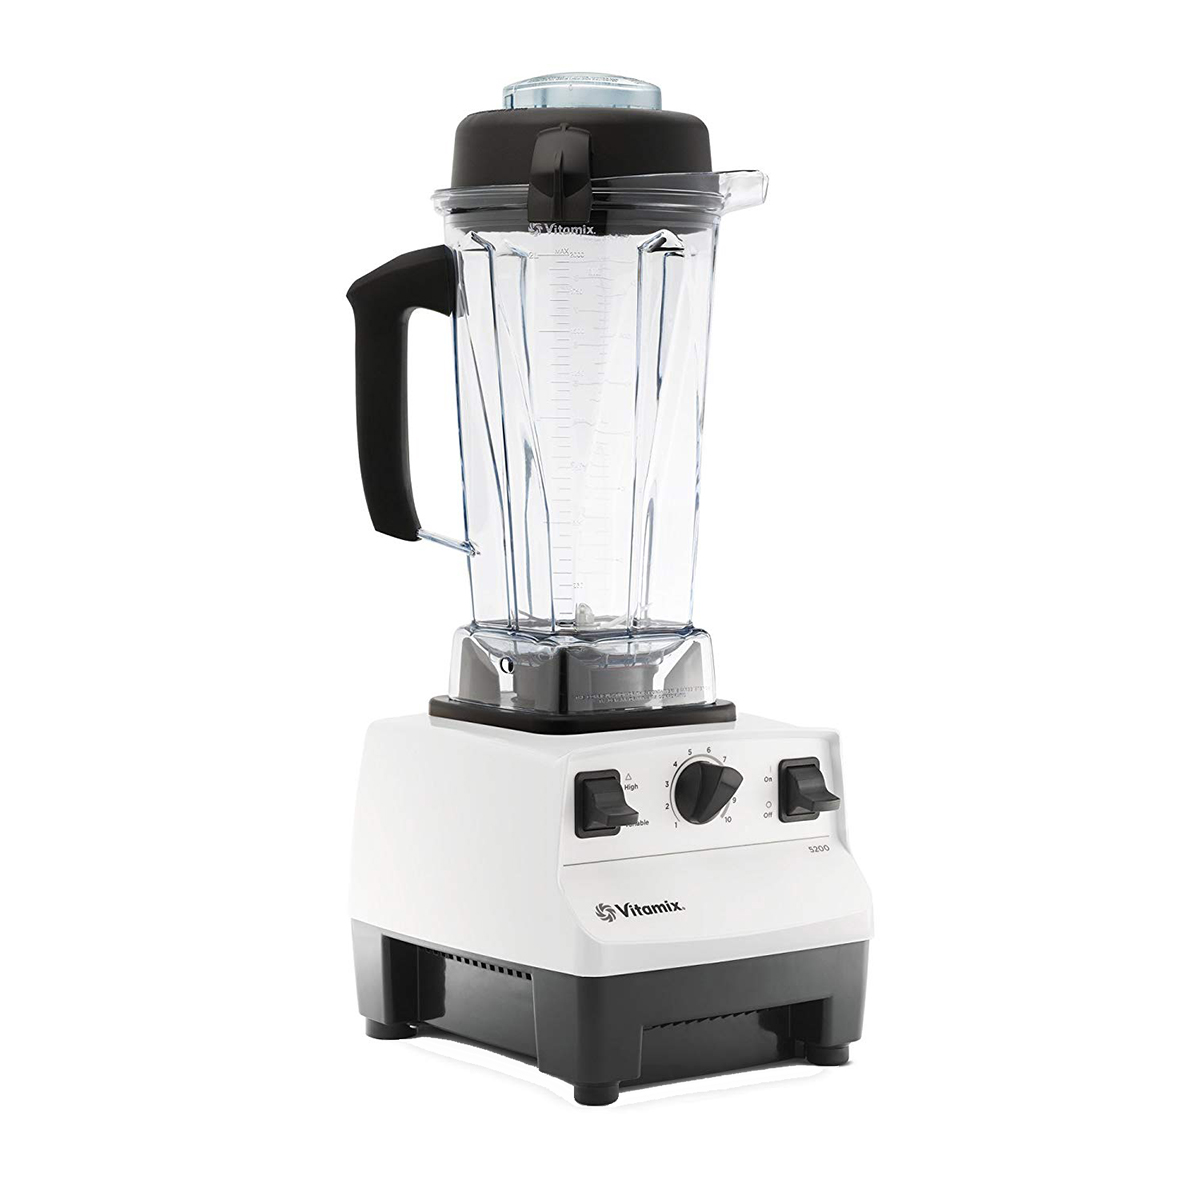 The 11 Best Blenders for All Your Kitchen Needs, According to